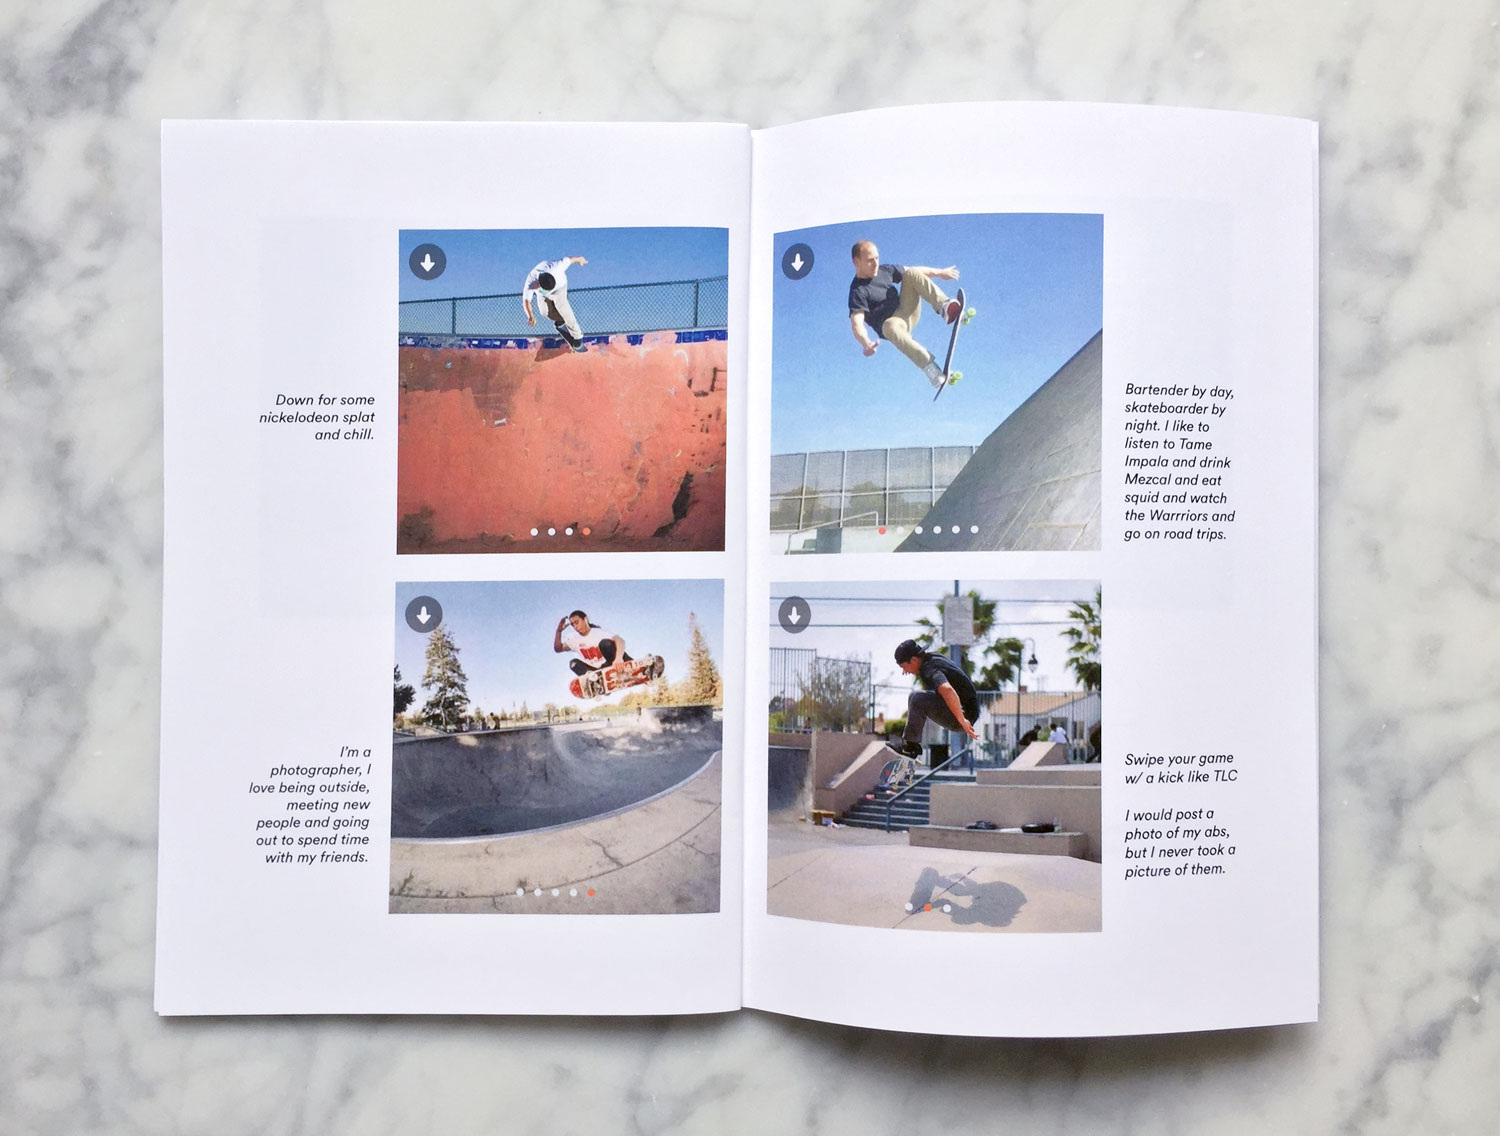 Image link to Defying Gravity zine. Interior spread featuring four Tinder profiles. In each profile is a man on a skateboard, mid-air